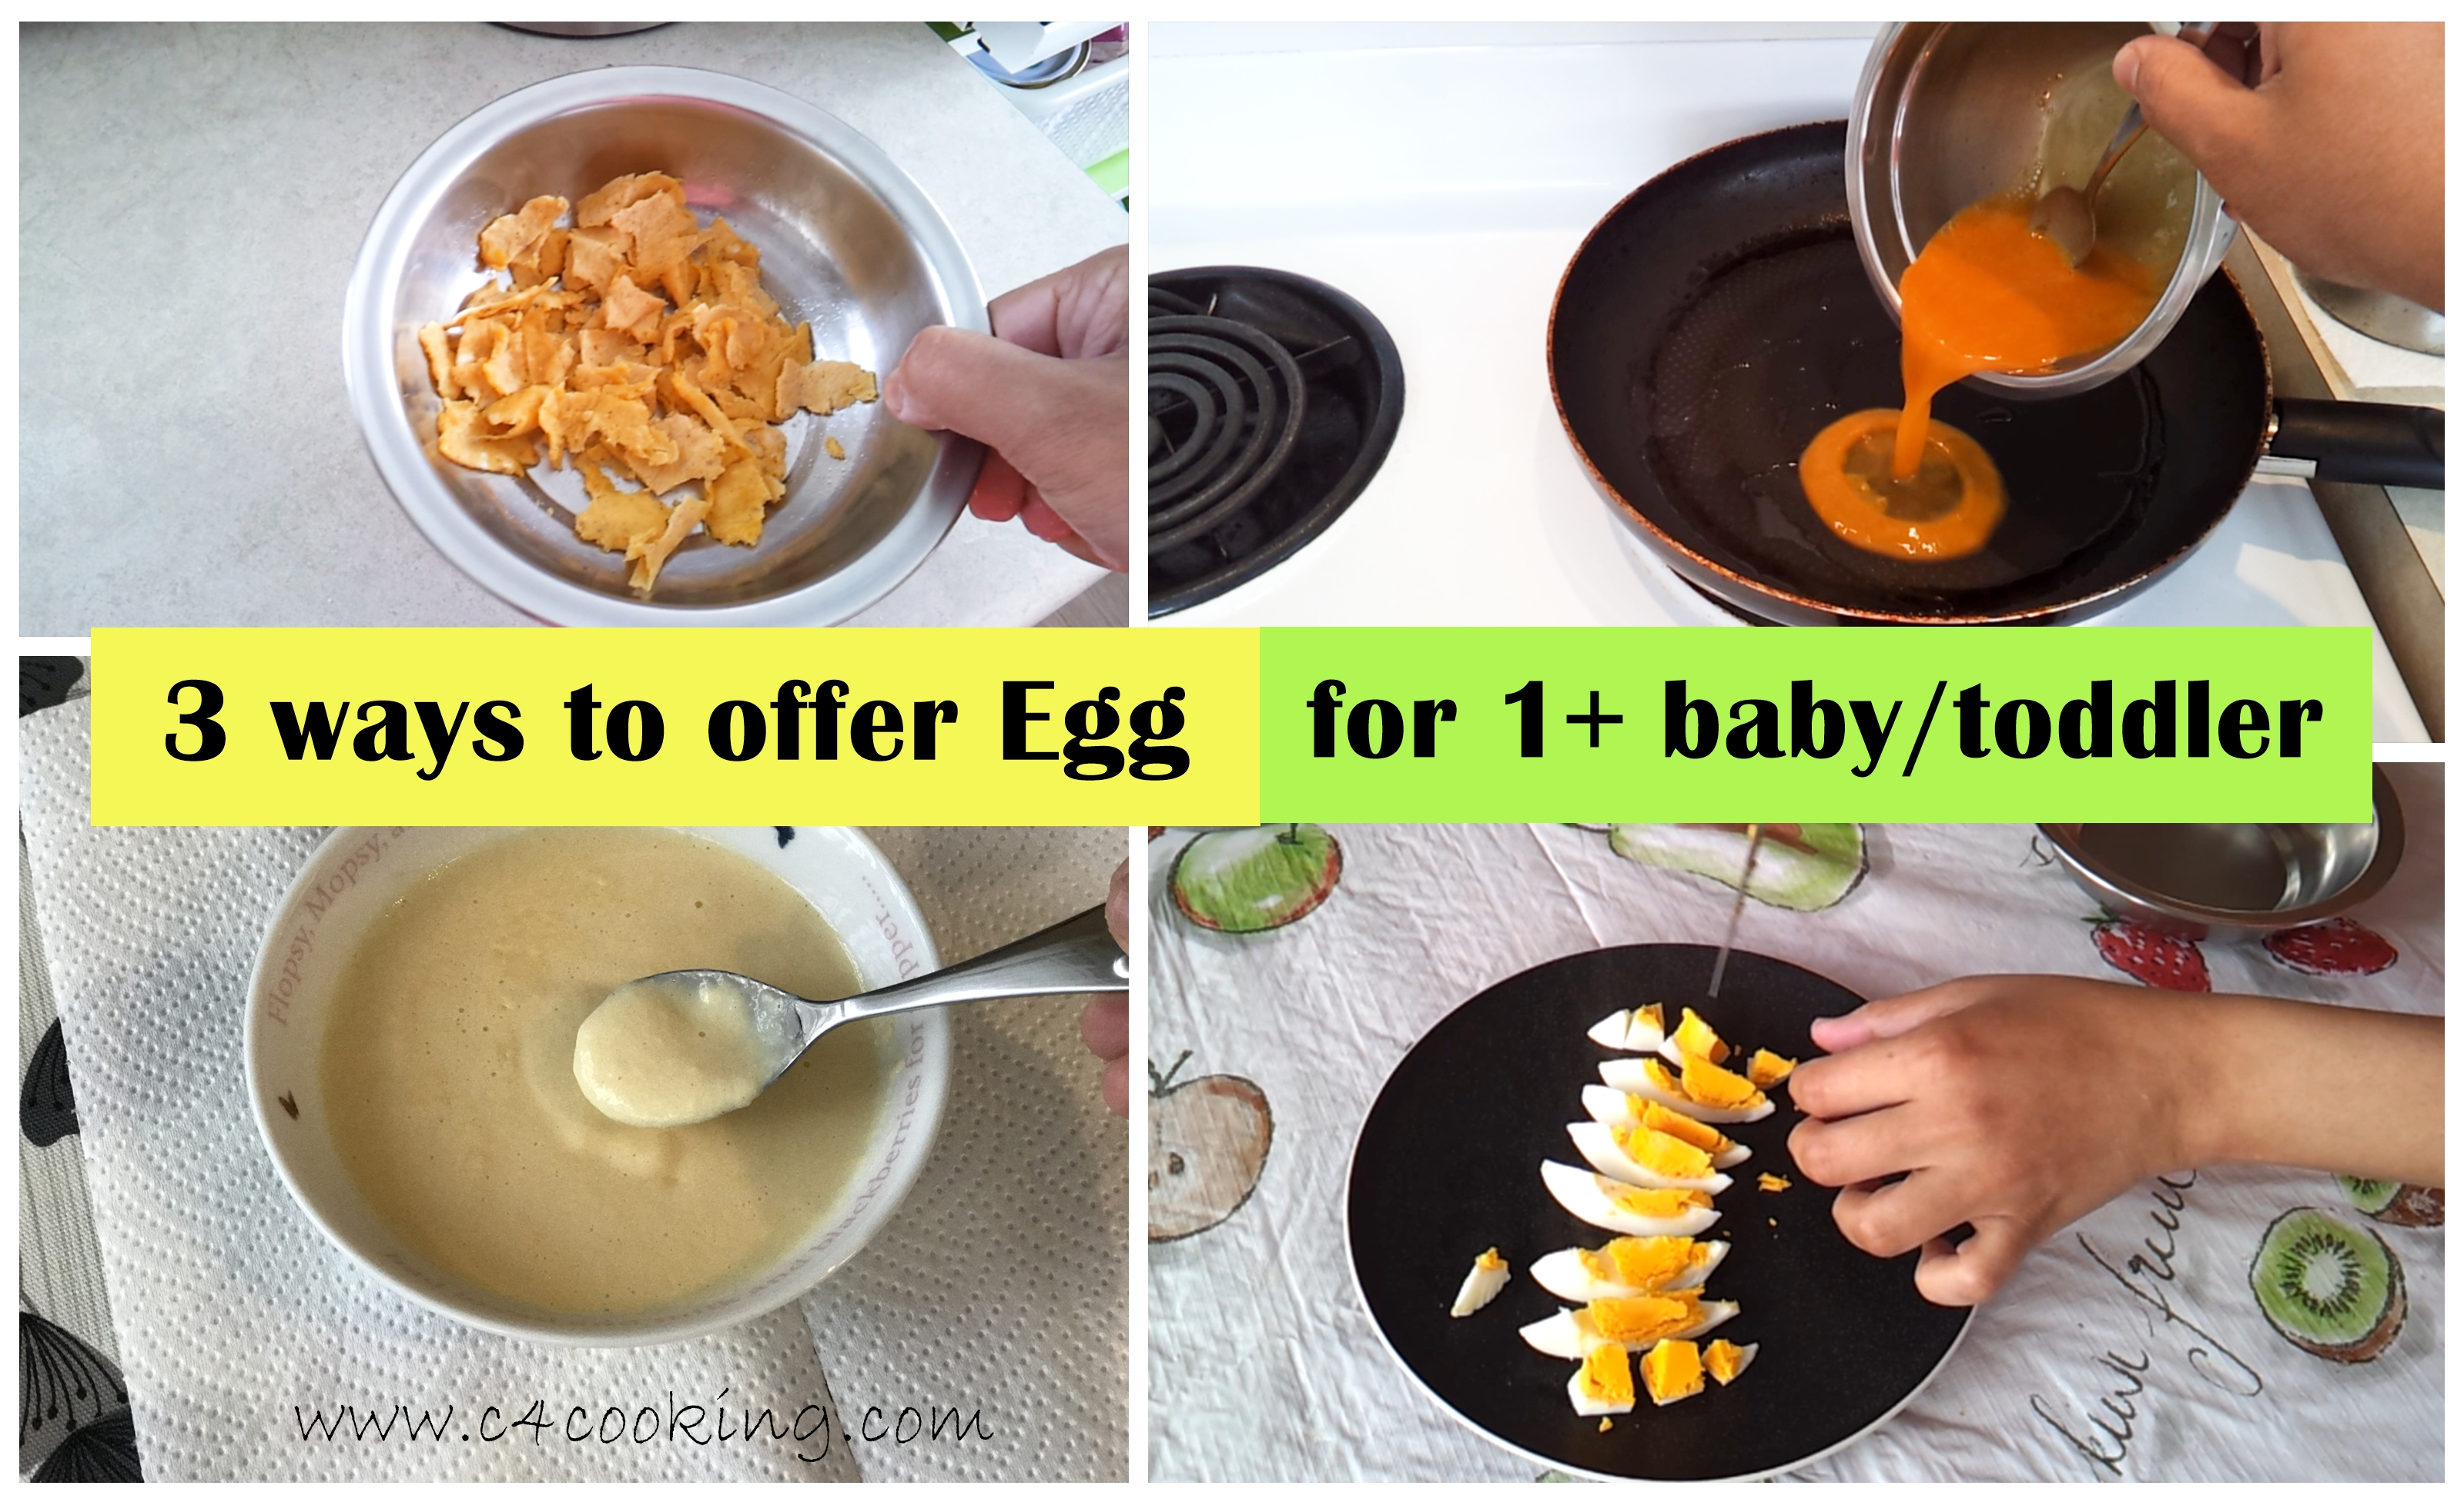 how to offer egg for babies, 3 ways to offer egg for 1+ baby toddler, egg recipes for toddler